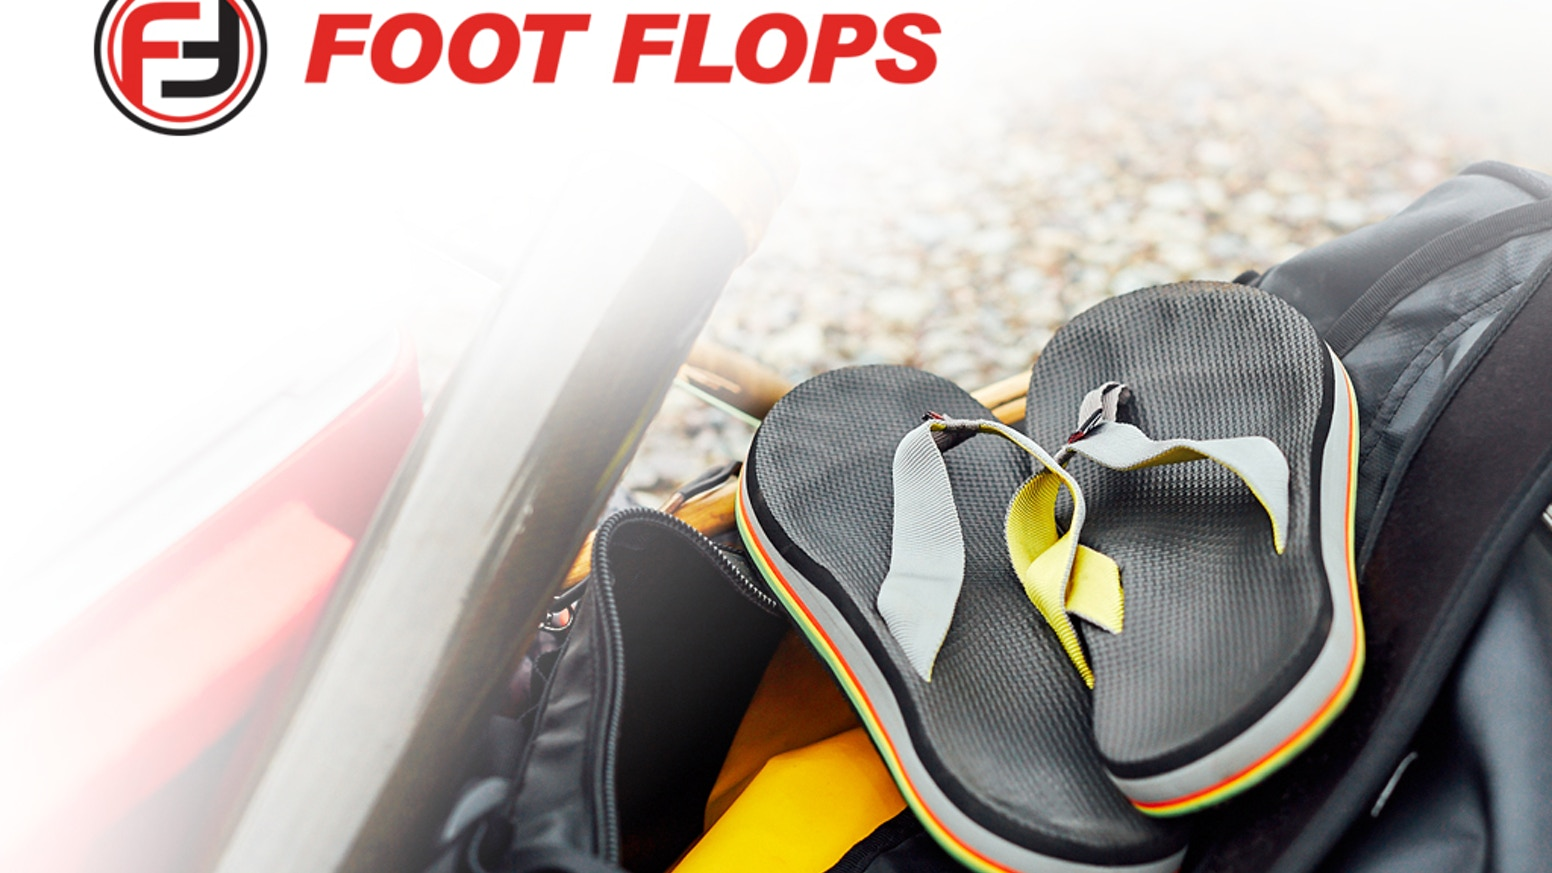 1e1c33d01 Foot Flops revolutionize footwear with its patent pending custom heat  moldable flip flops that form to